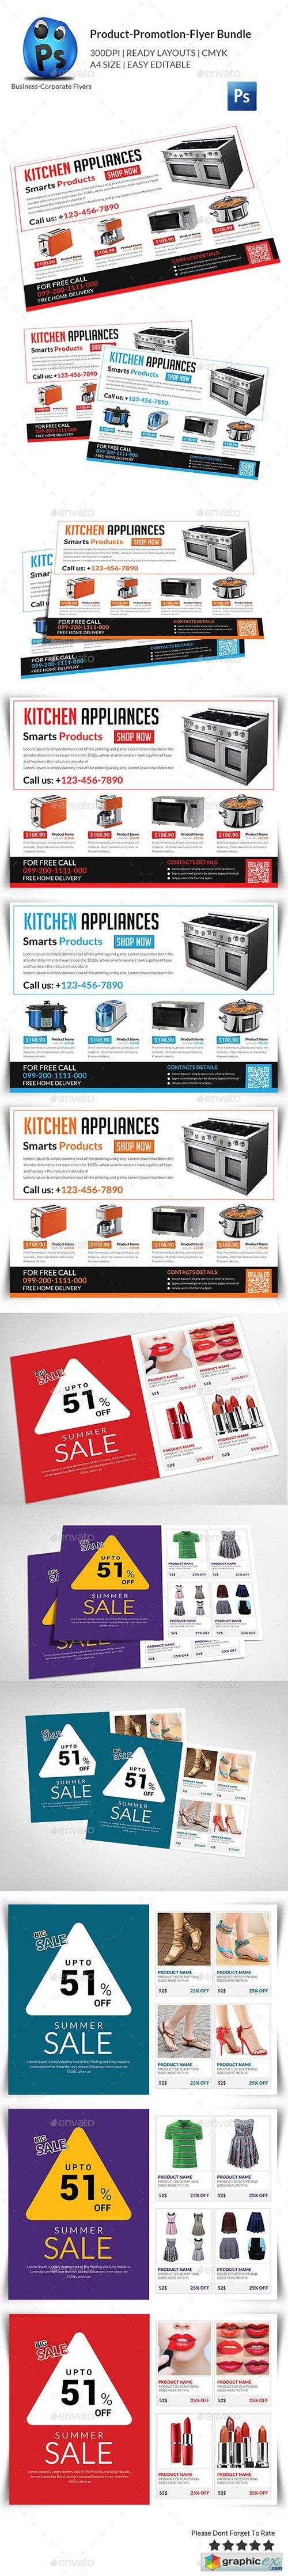 Product Promotion Flyer Bundle 11553930